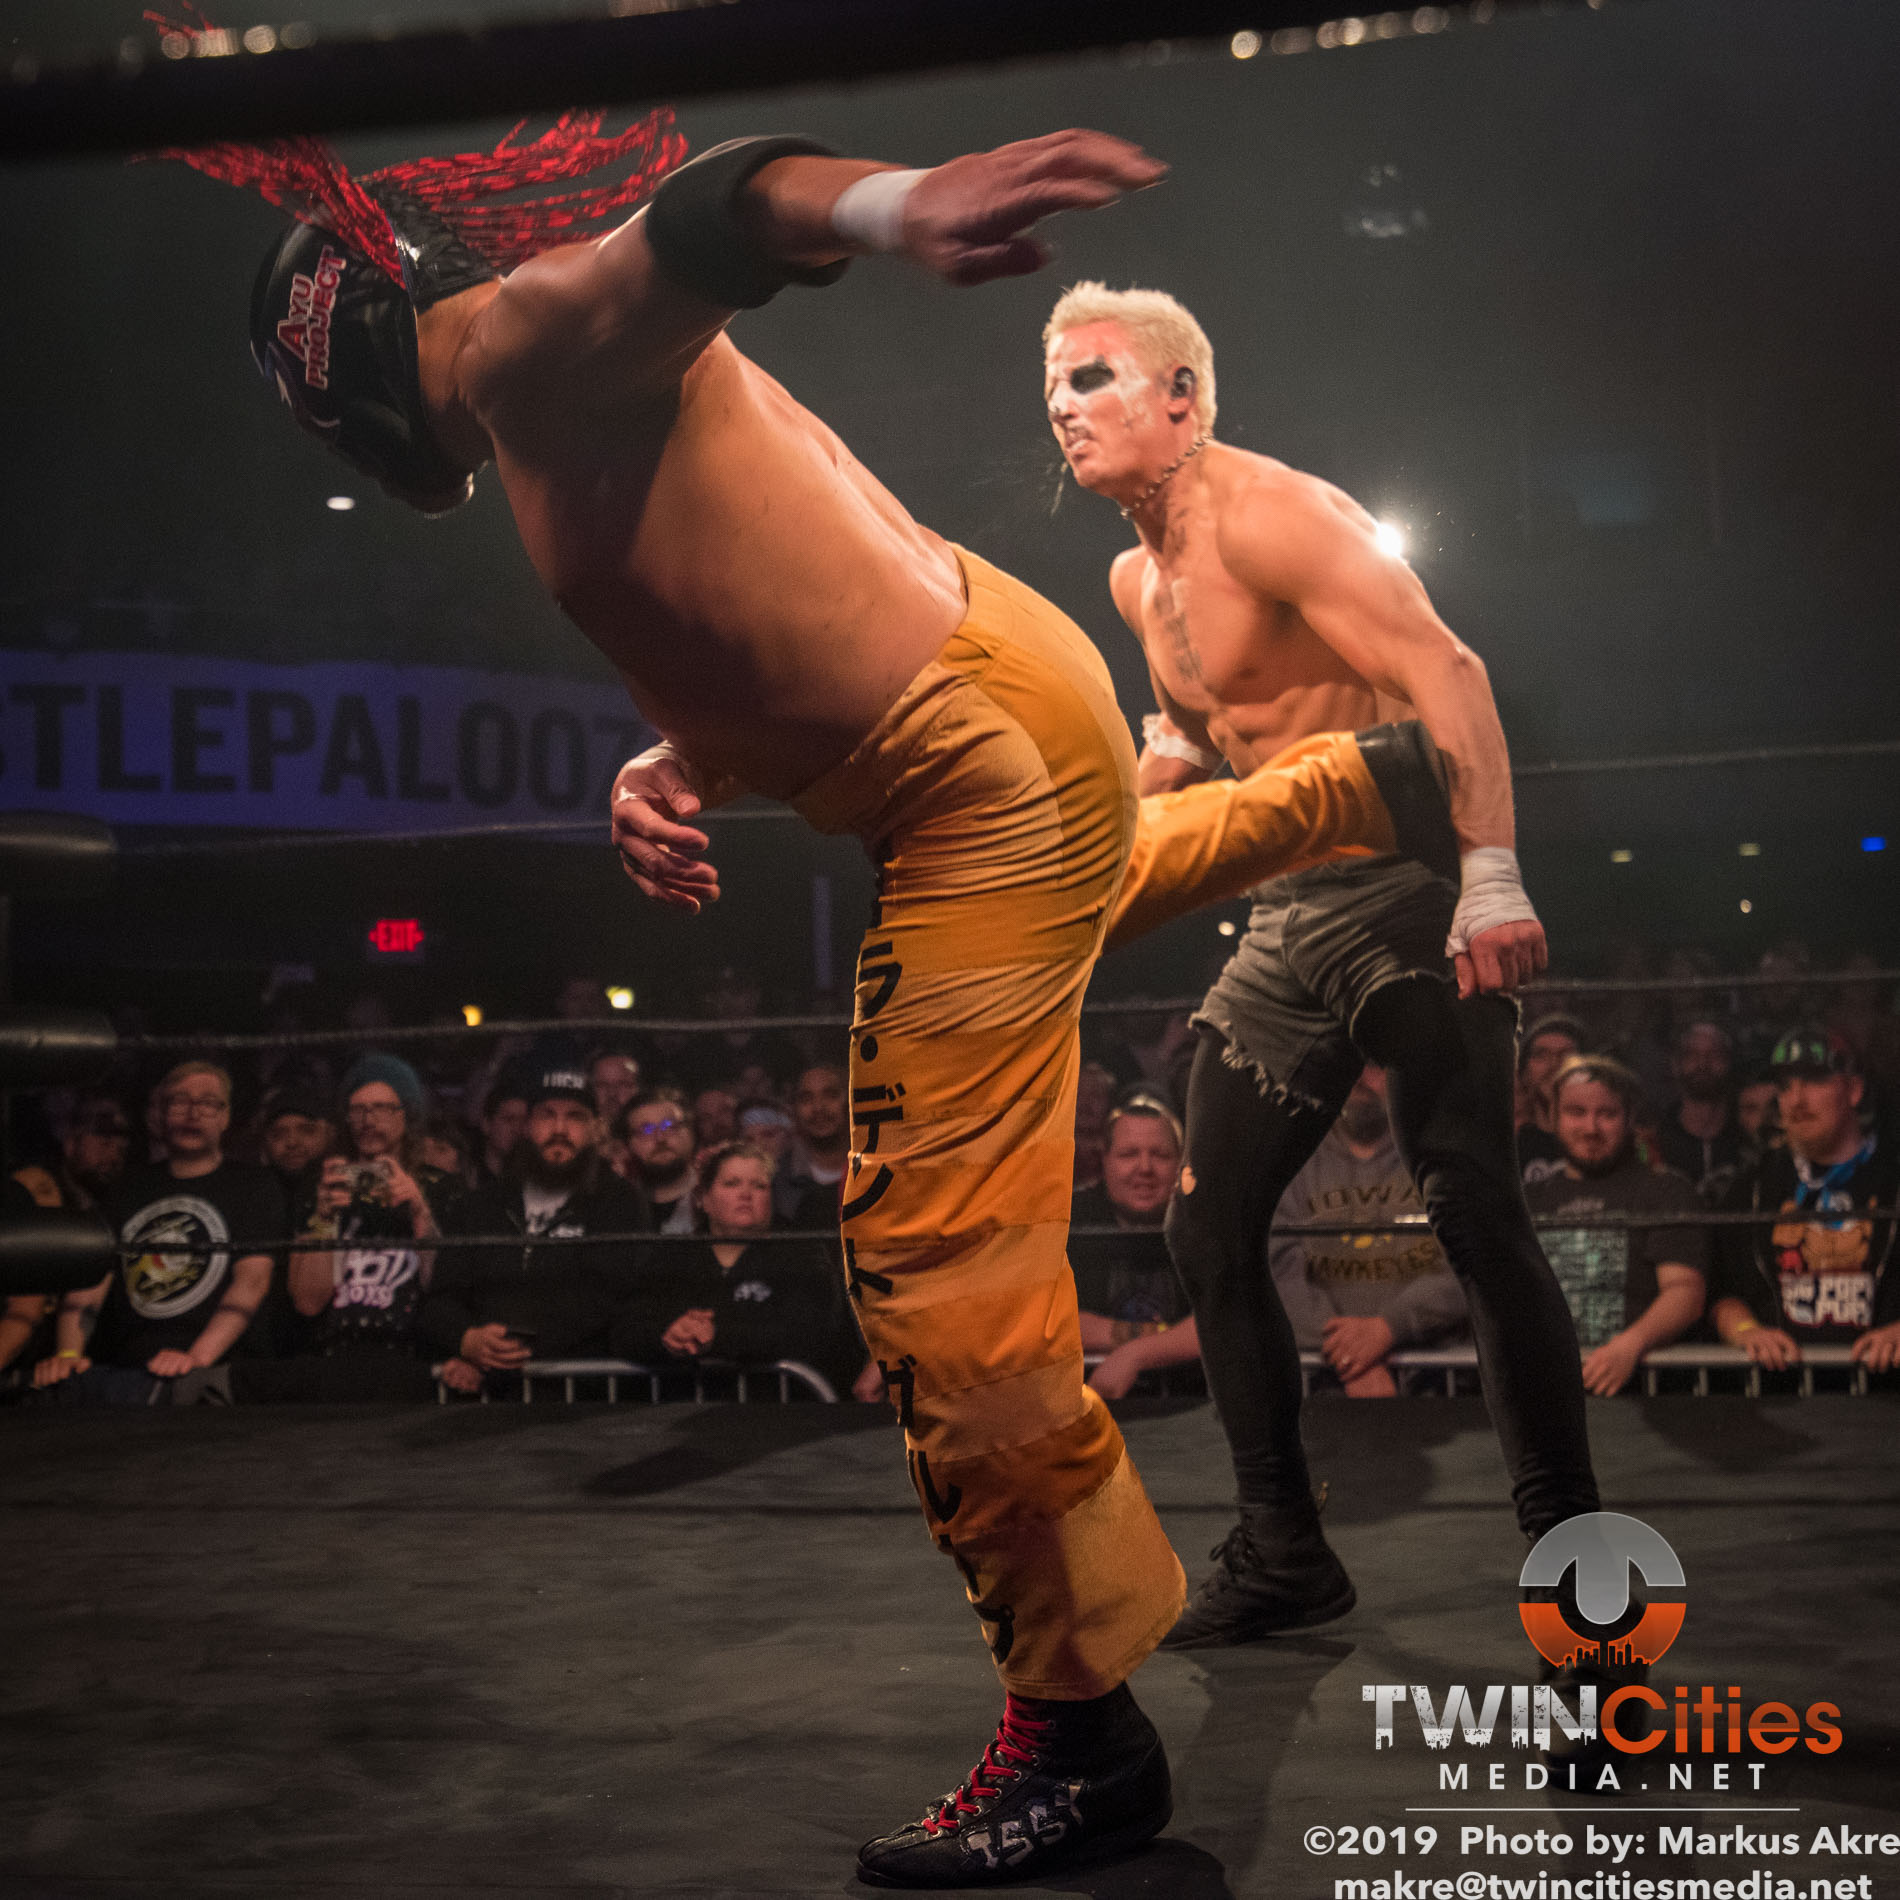 Wrestlepalooza - Match 5-16